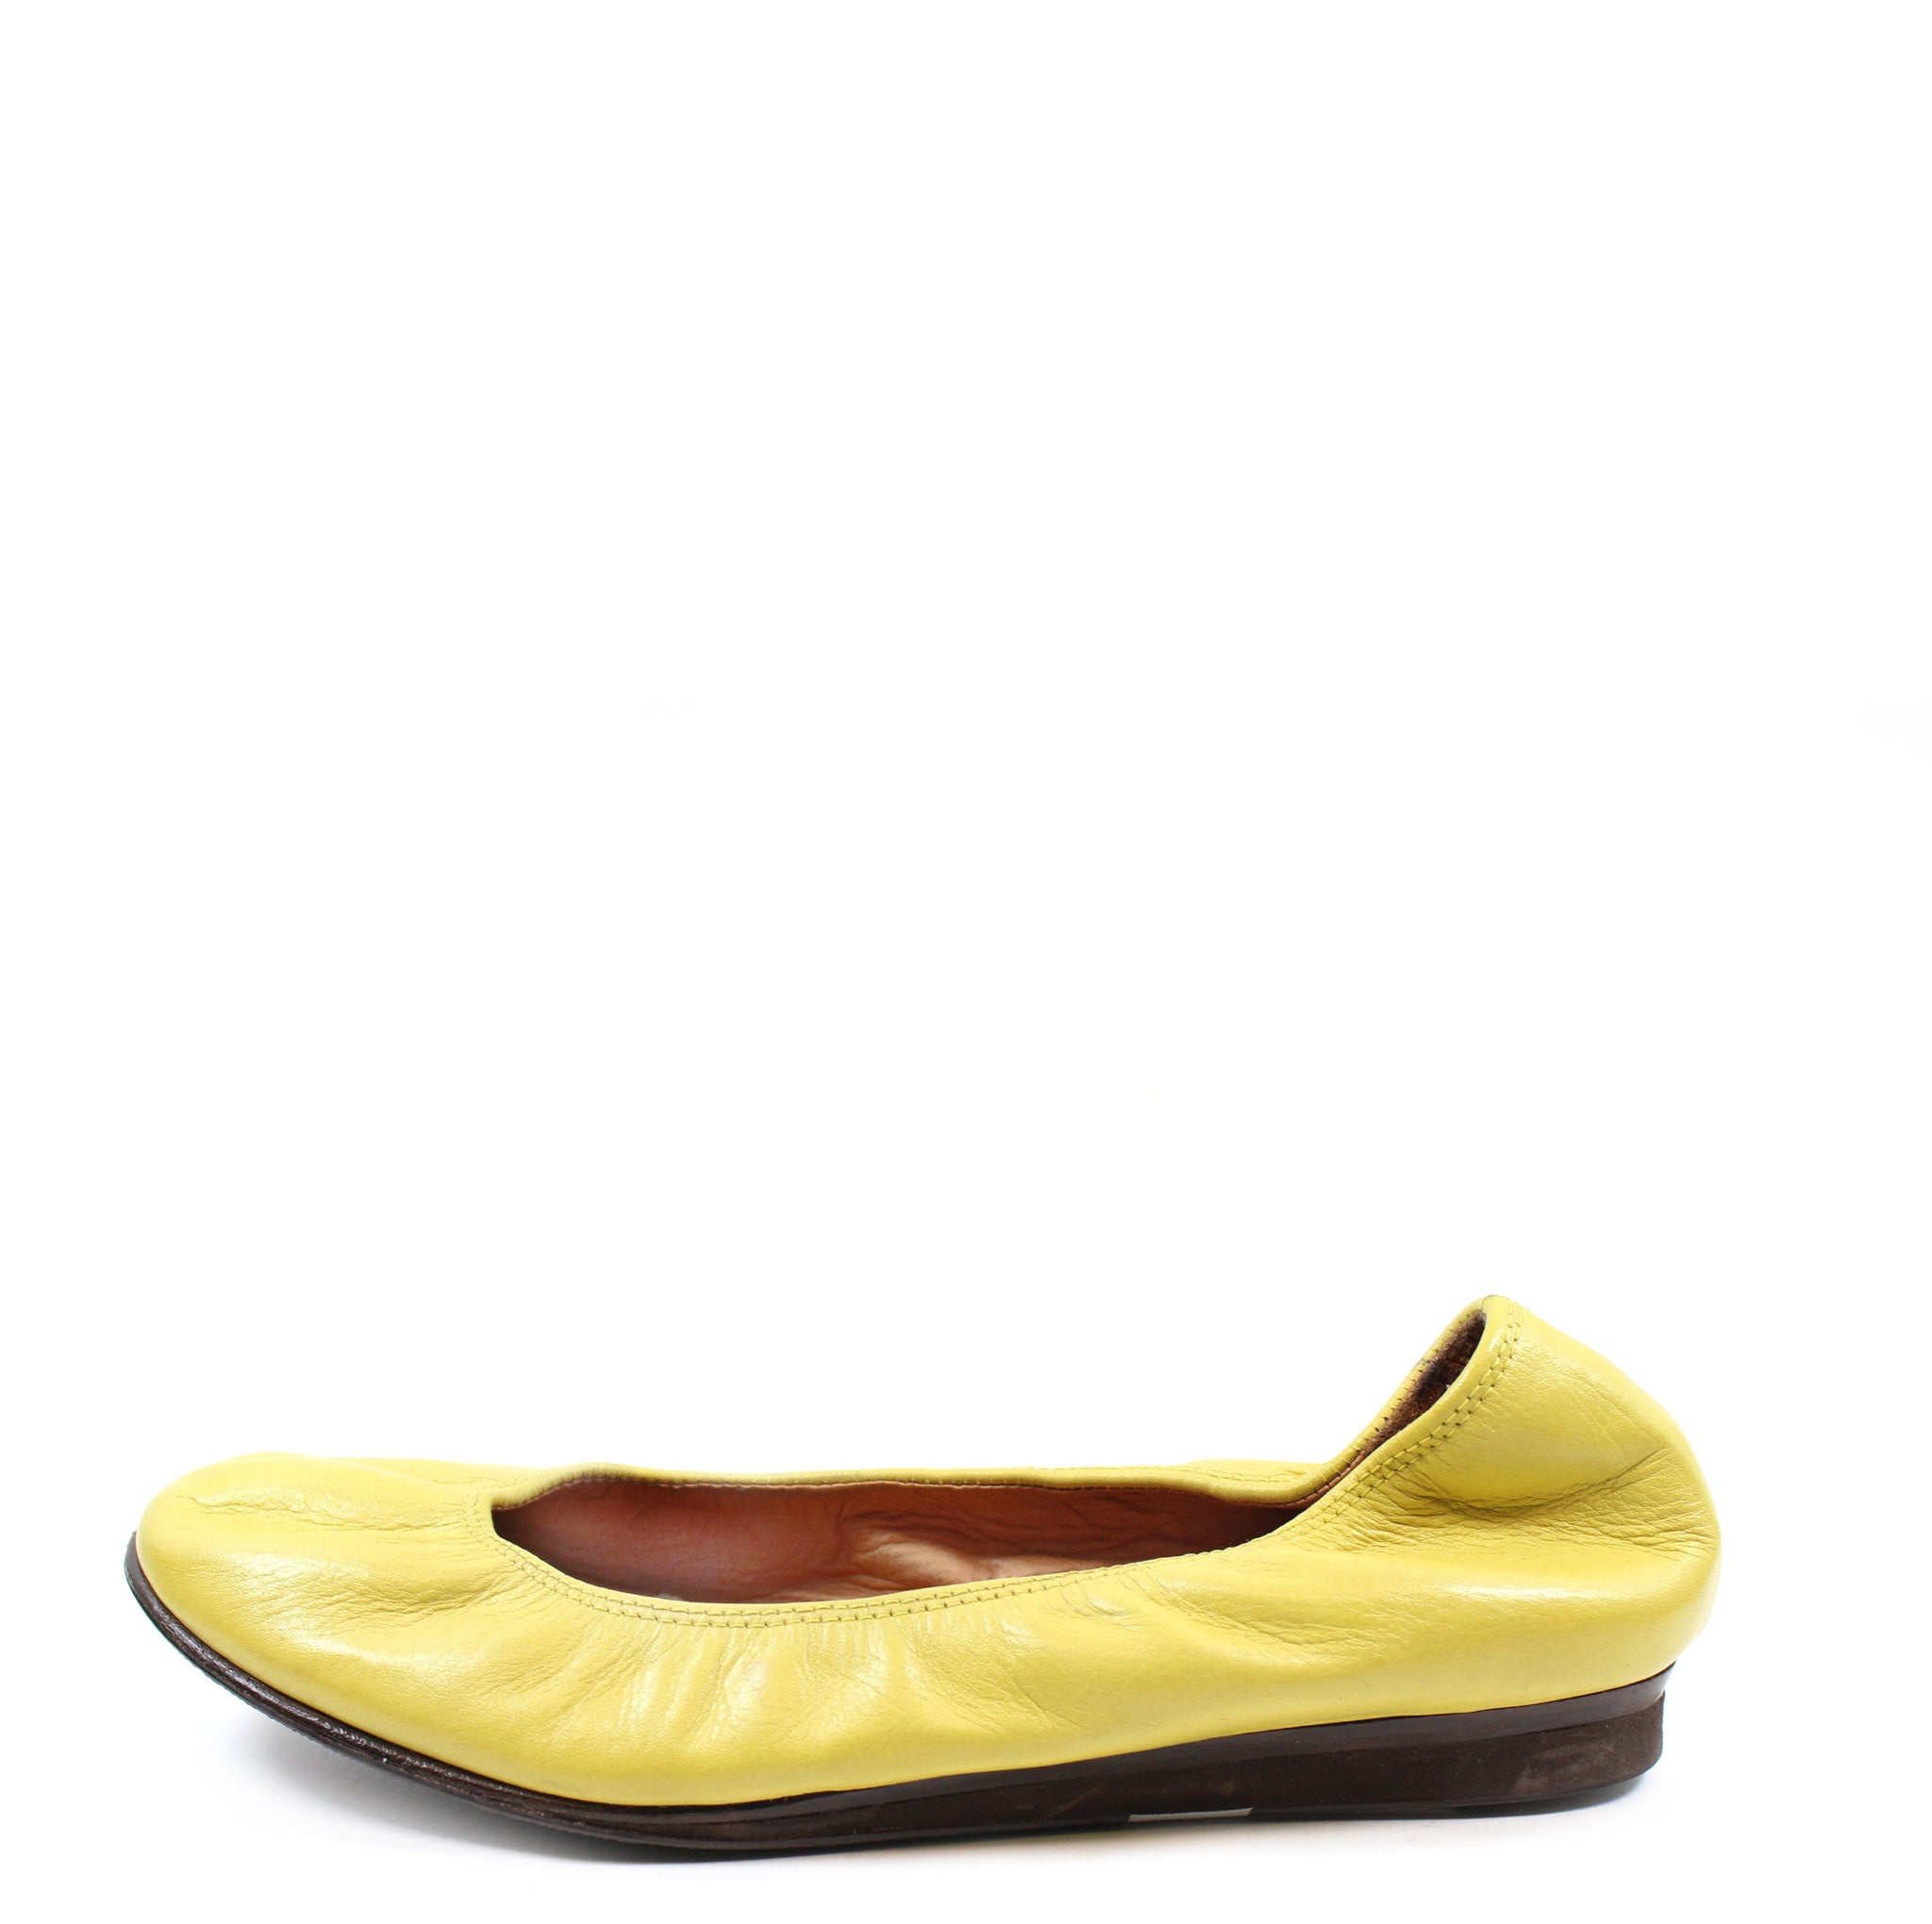 Lanvin Yellow 10mm Leather Ballet Flats (Size 39)